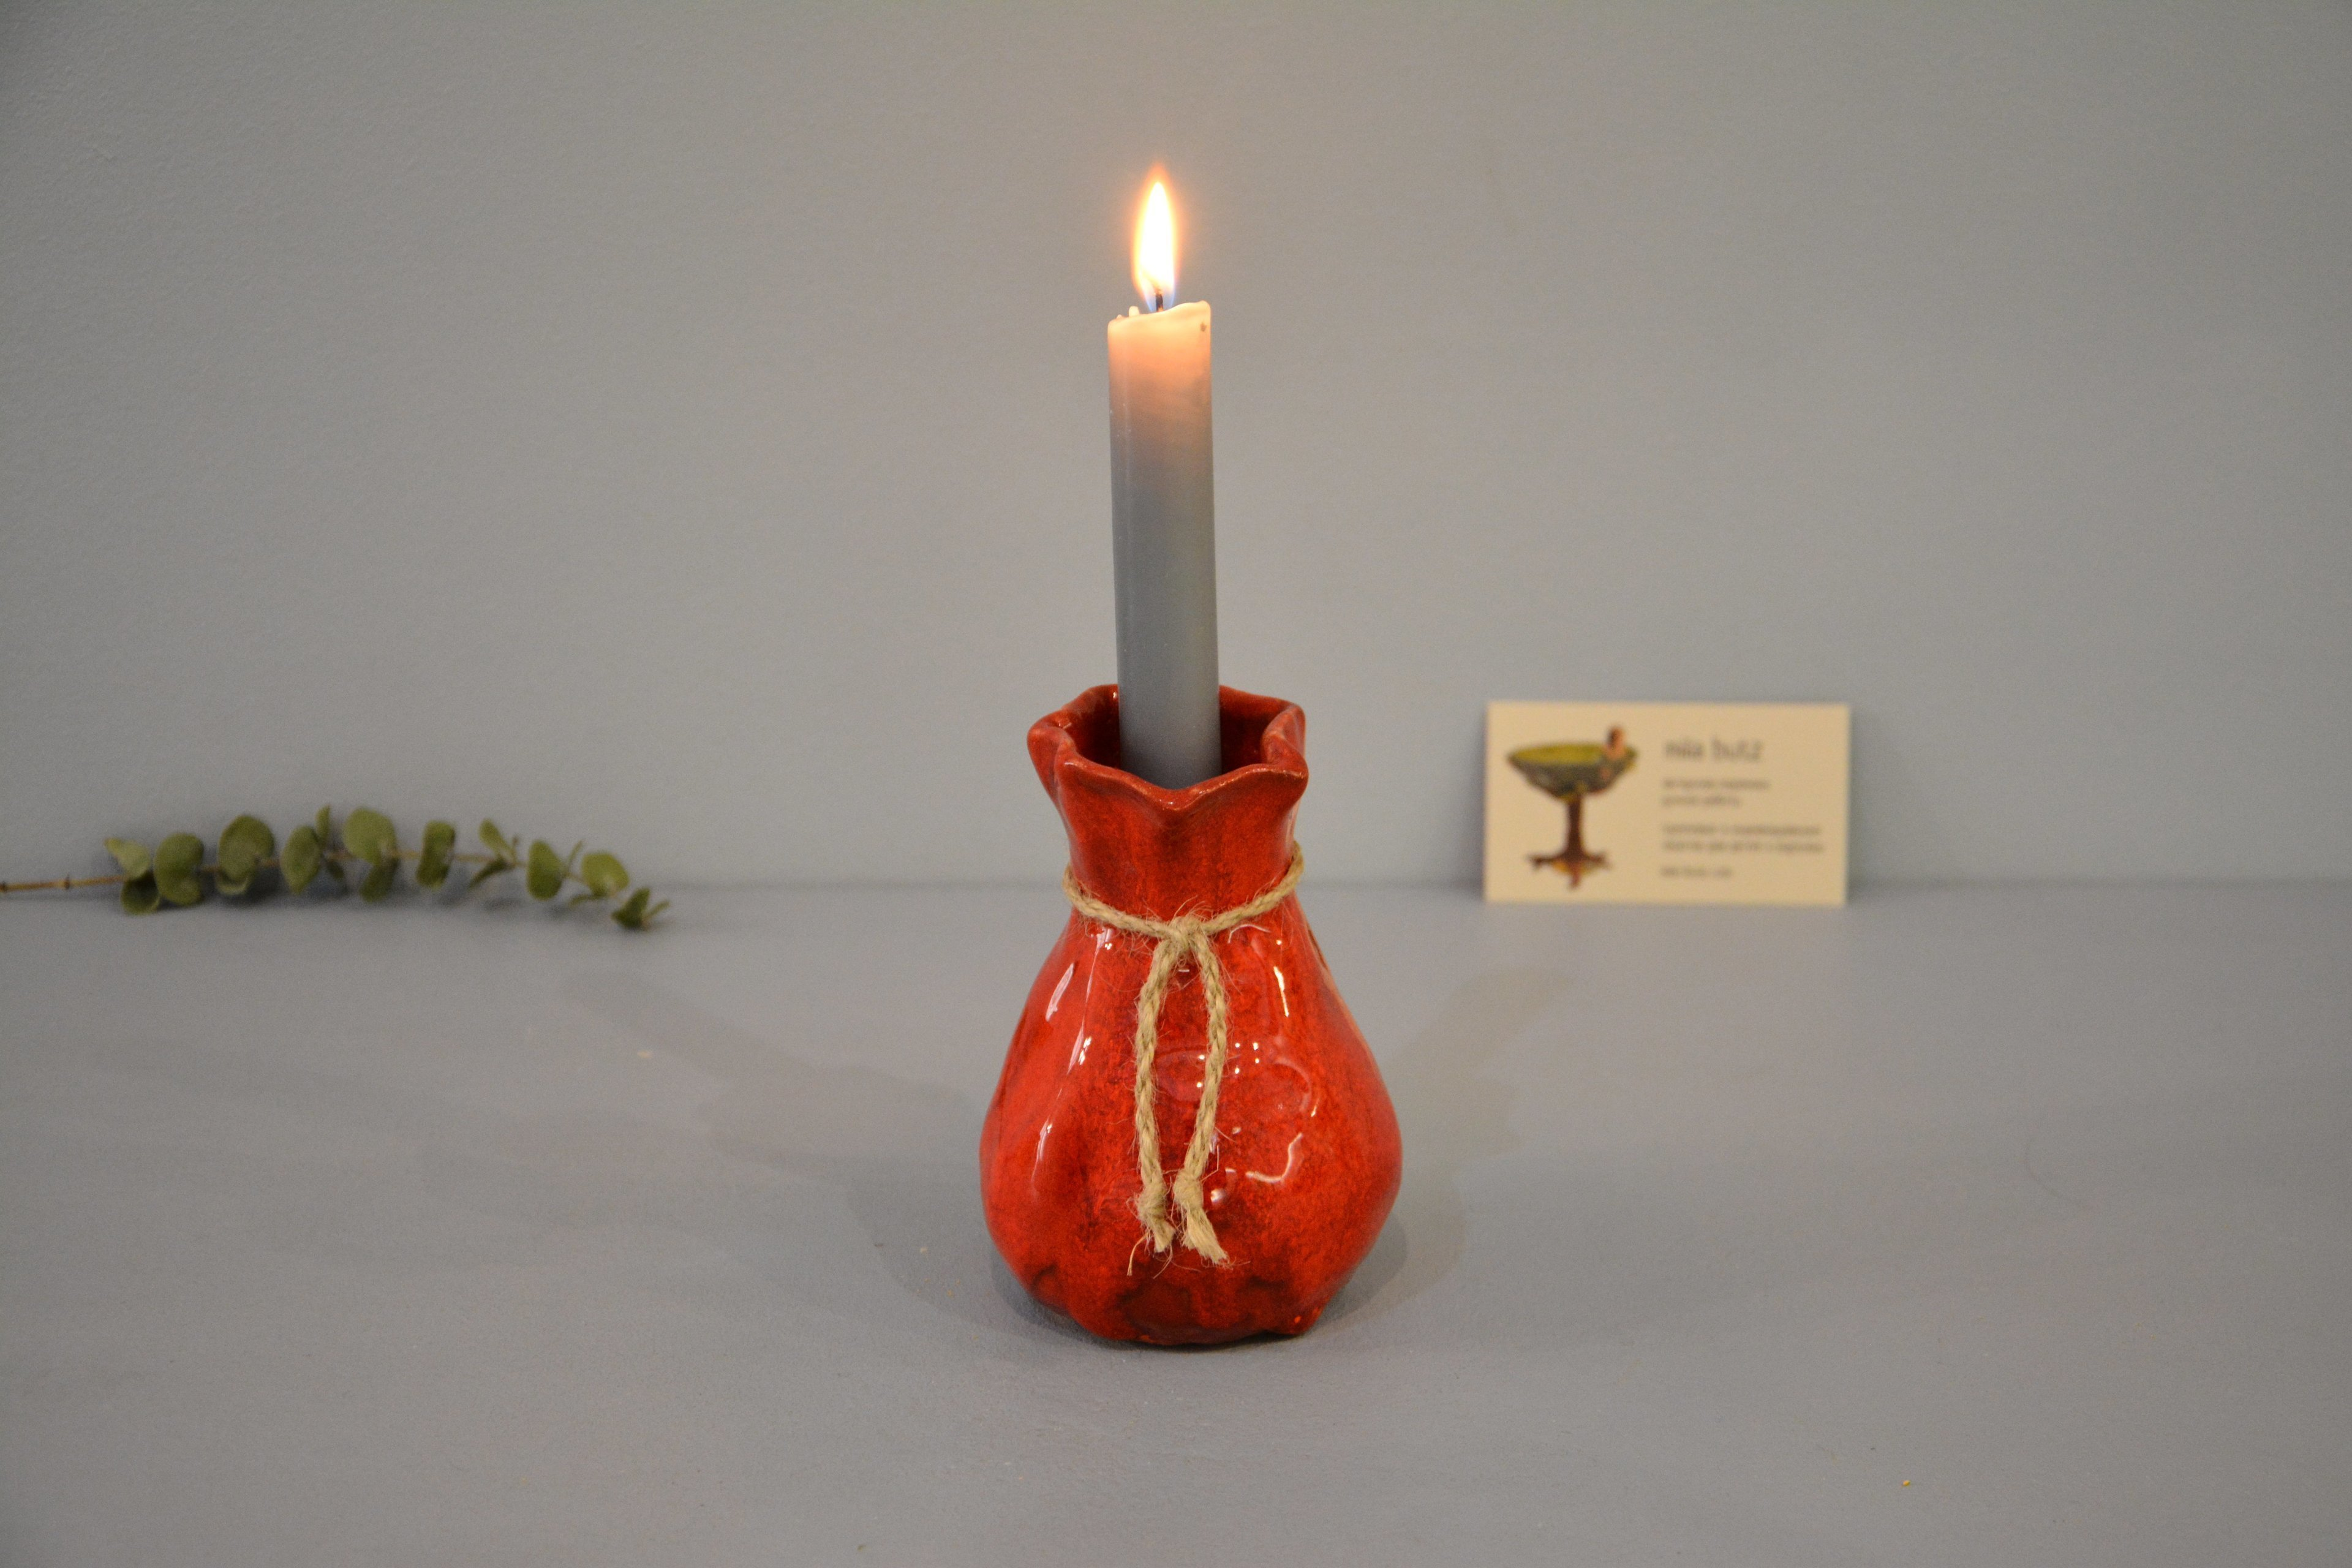 Candle vase «Red Bagful», height - 12 cm, color - red. Photo 1423.